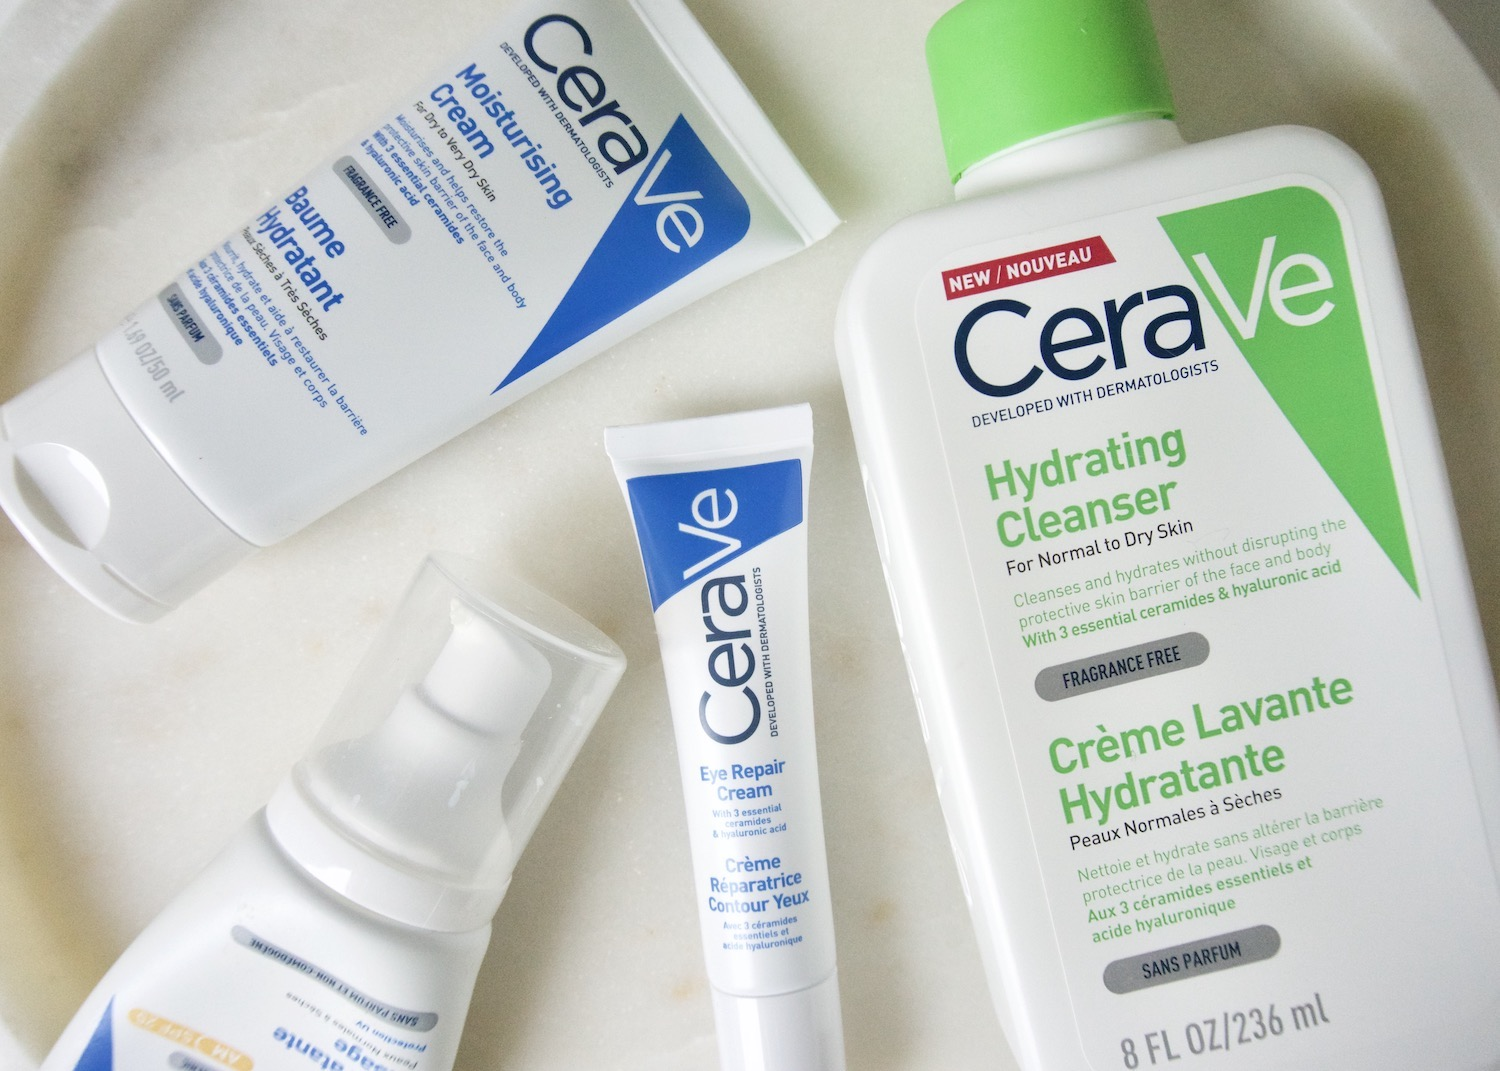 Review CeraVe Hydrating Cleanser, Eye Repair Cream & Moisturizing Lotions (SPF)